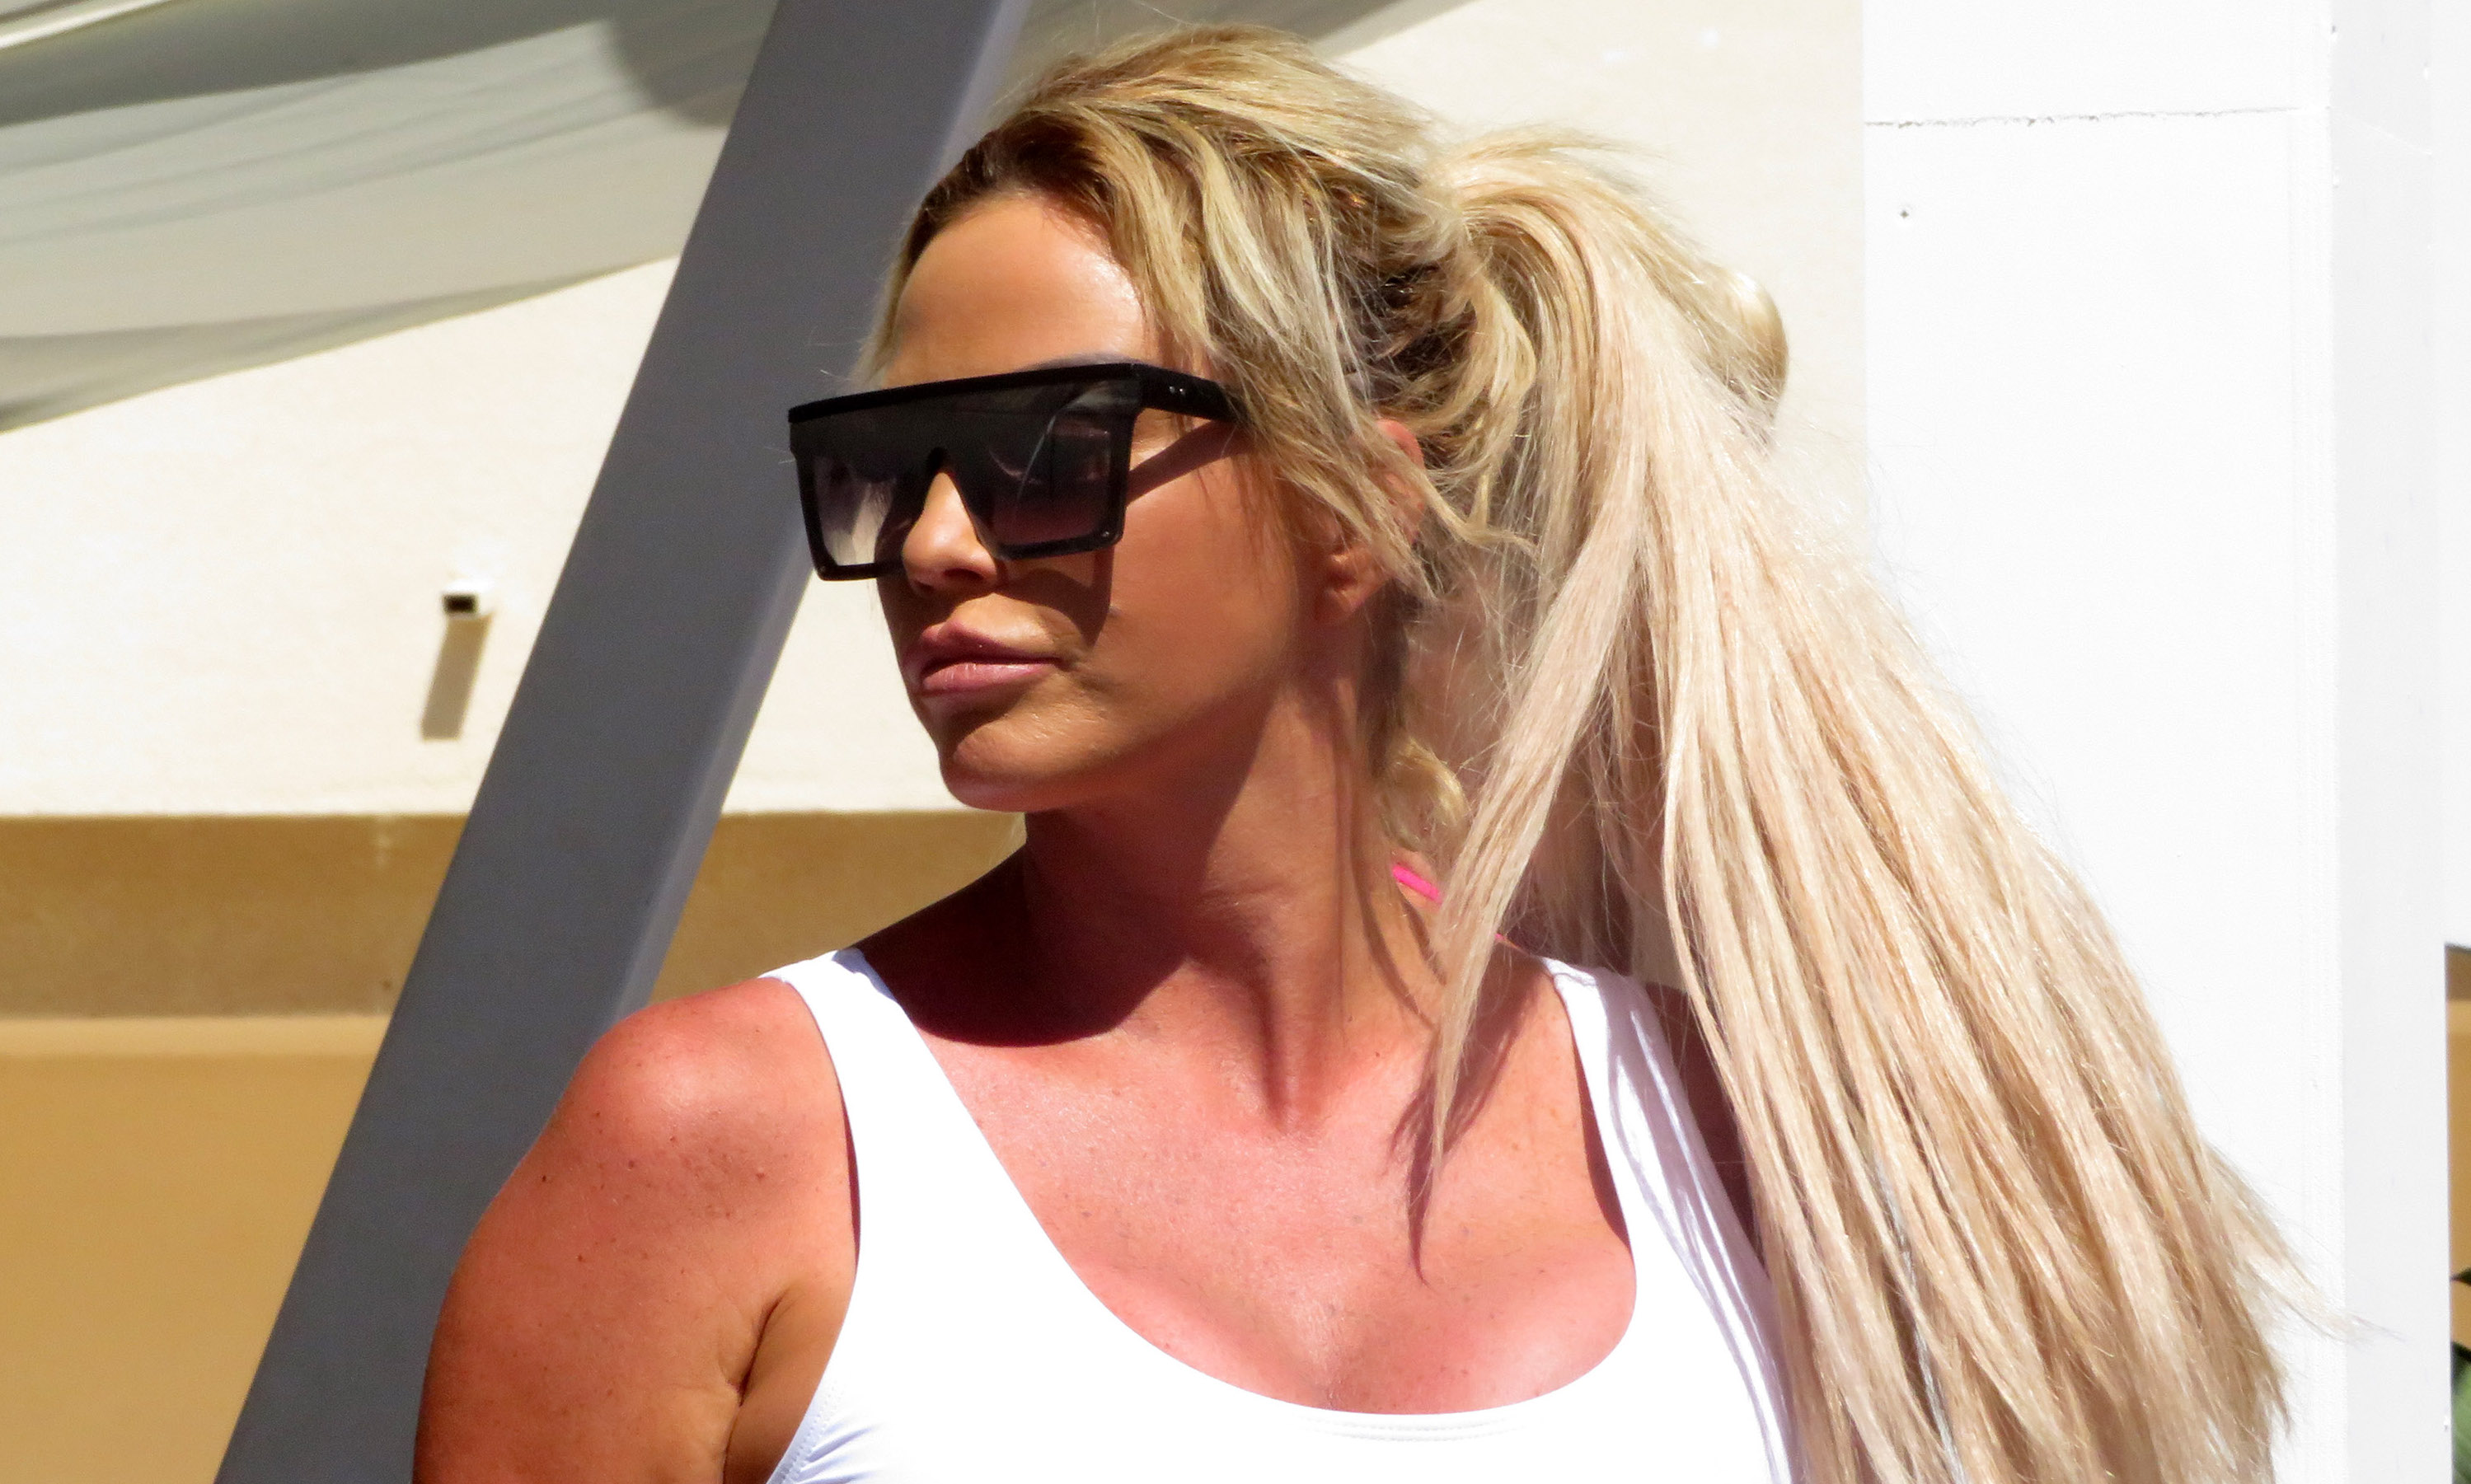 Katie Price 'admits she fears she's going bald' through stress and dieting